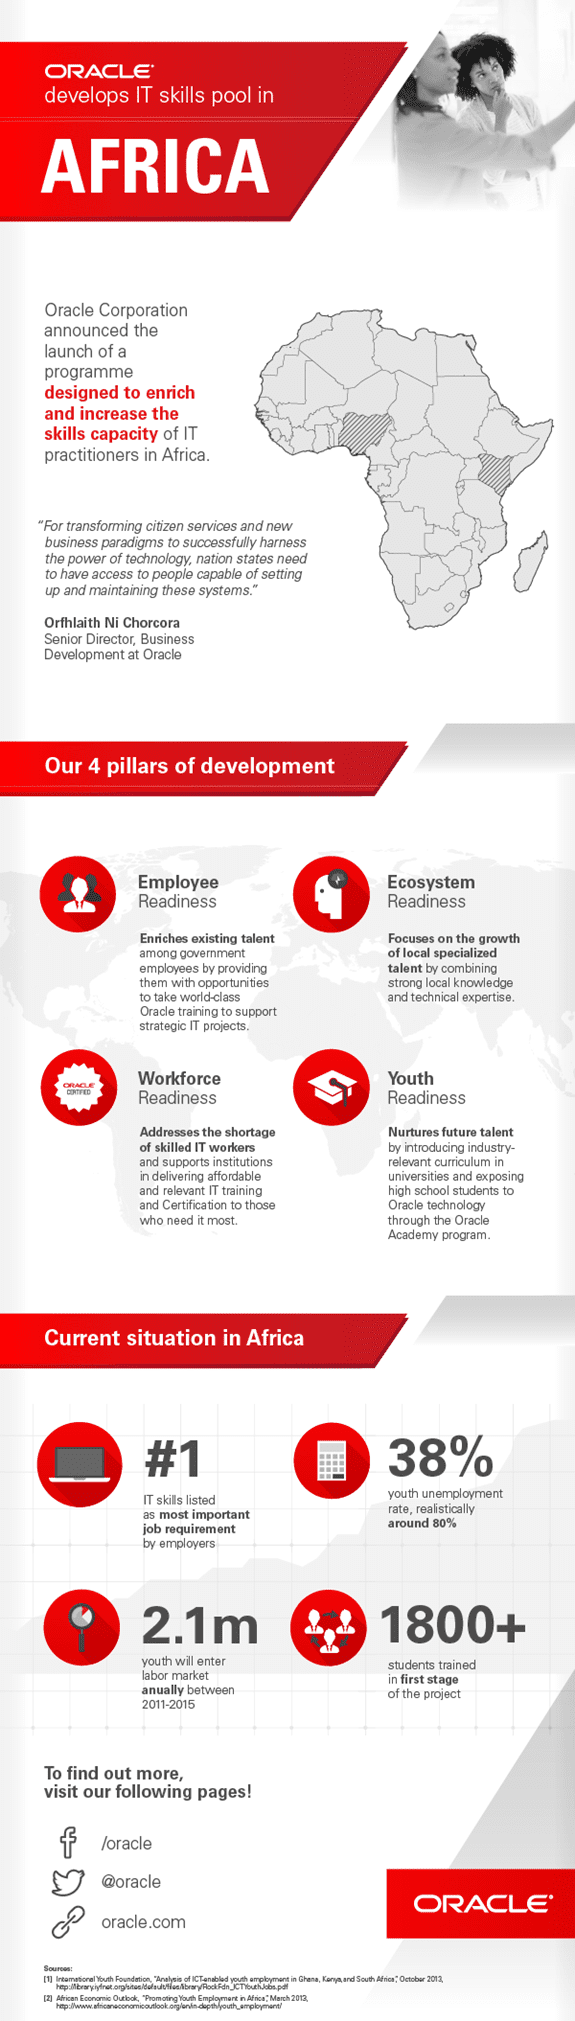 Oracle Capacity Building Programme Infographic